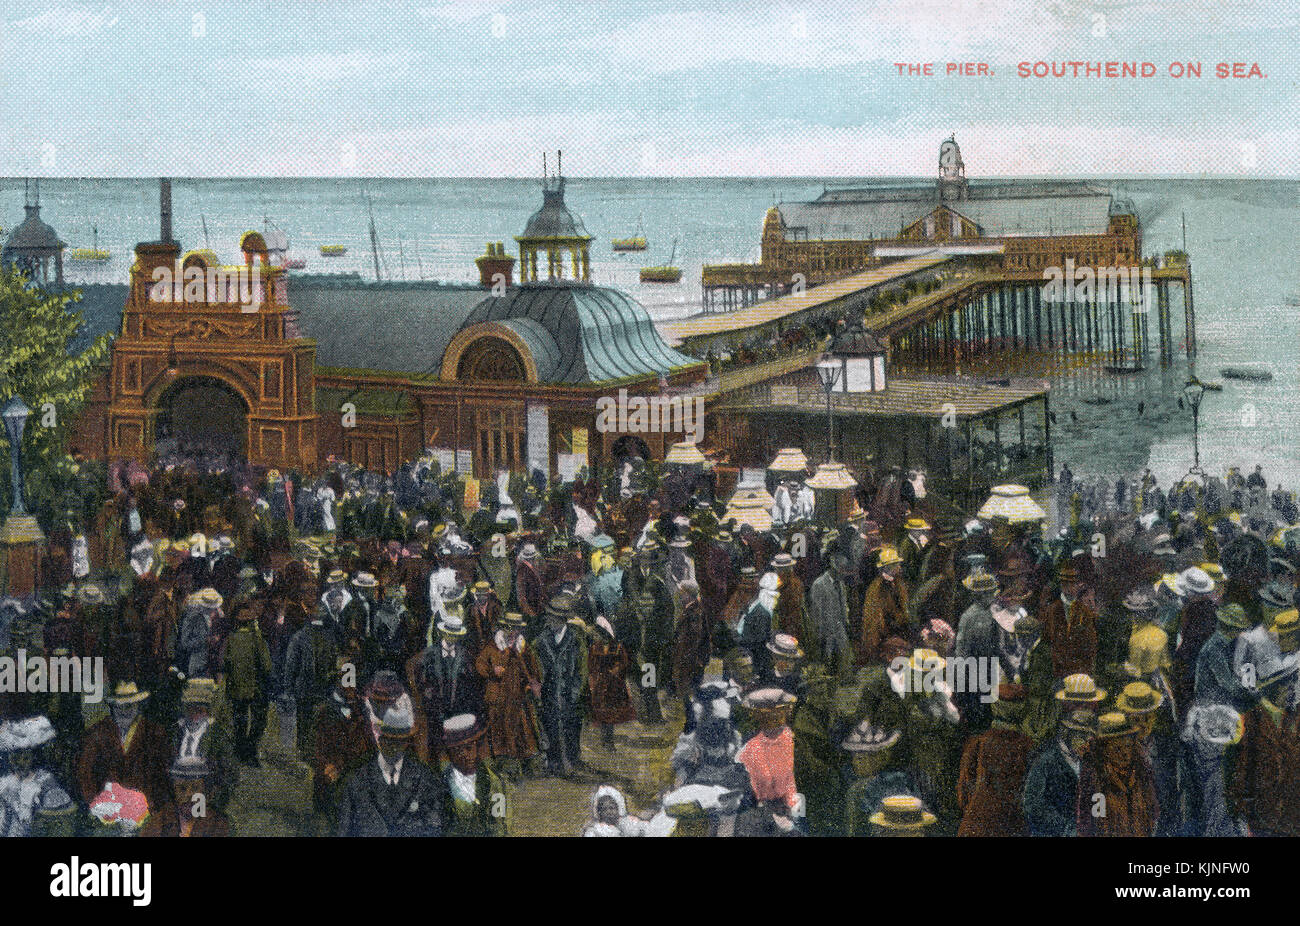 Edwardian postcard of the pier head at Southend-On-Sea, Essex. - Stock Image